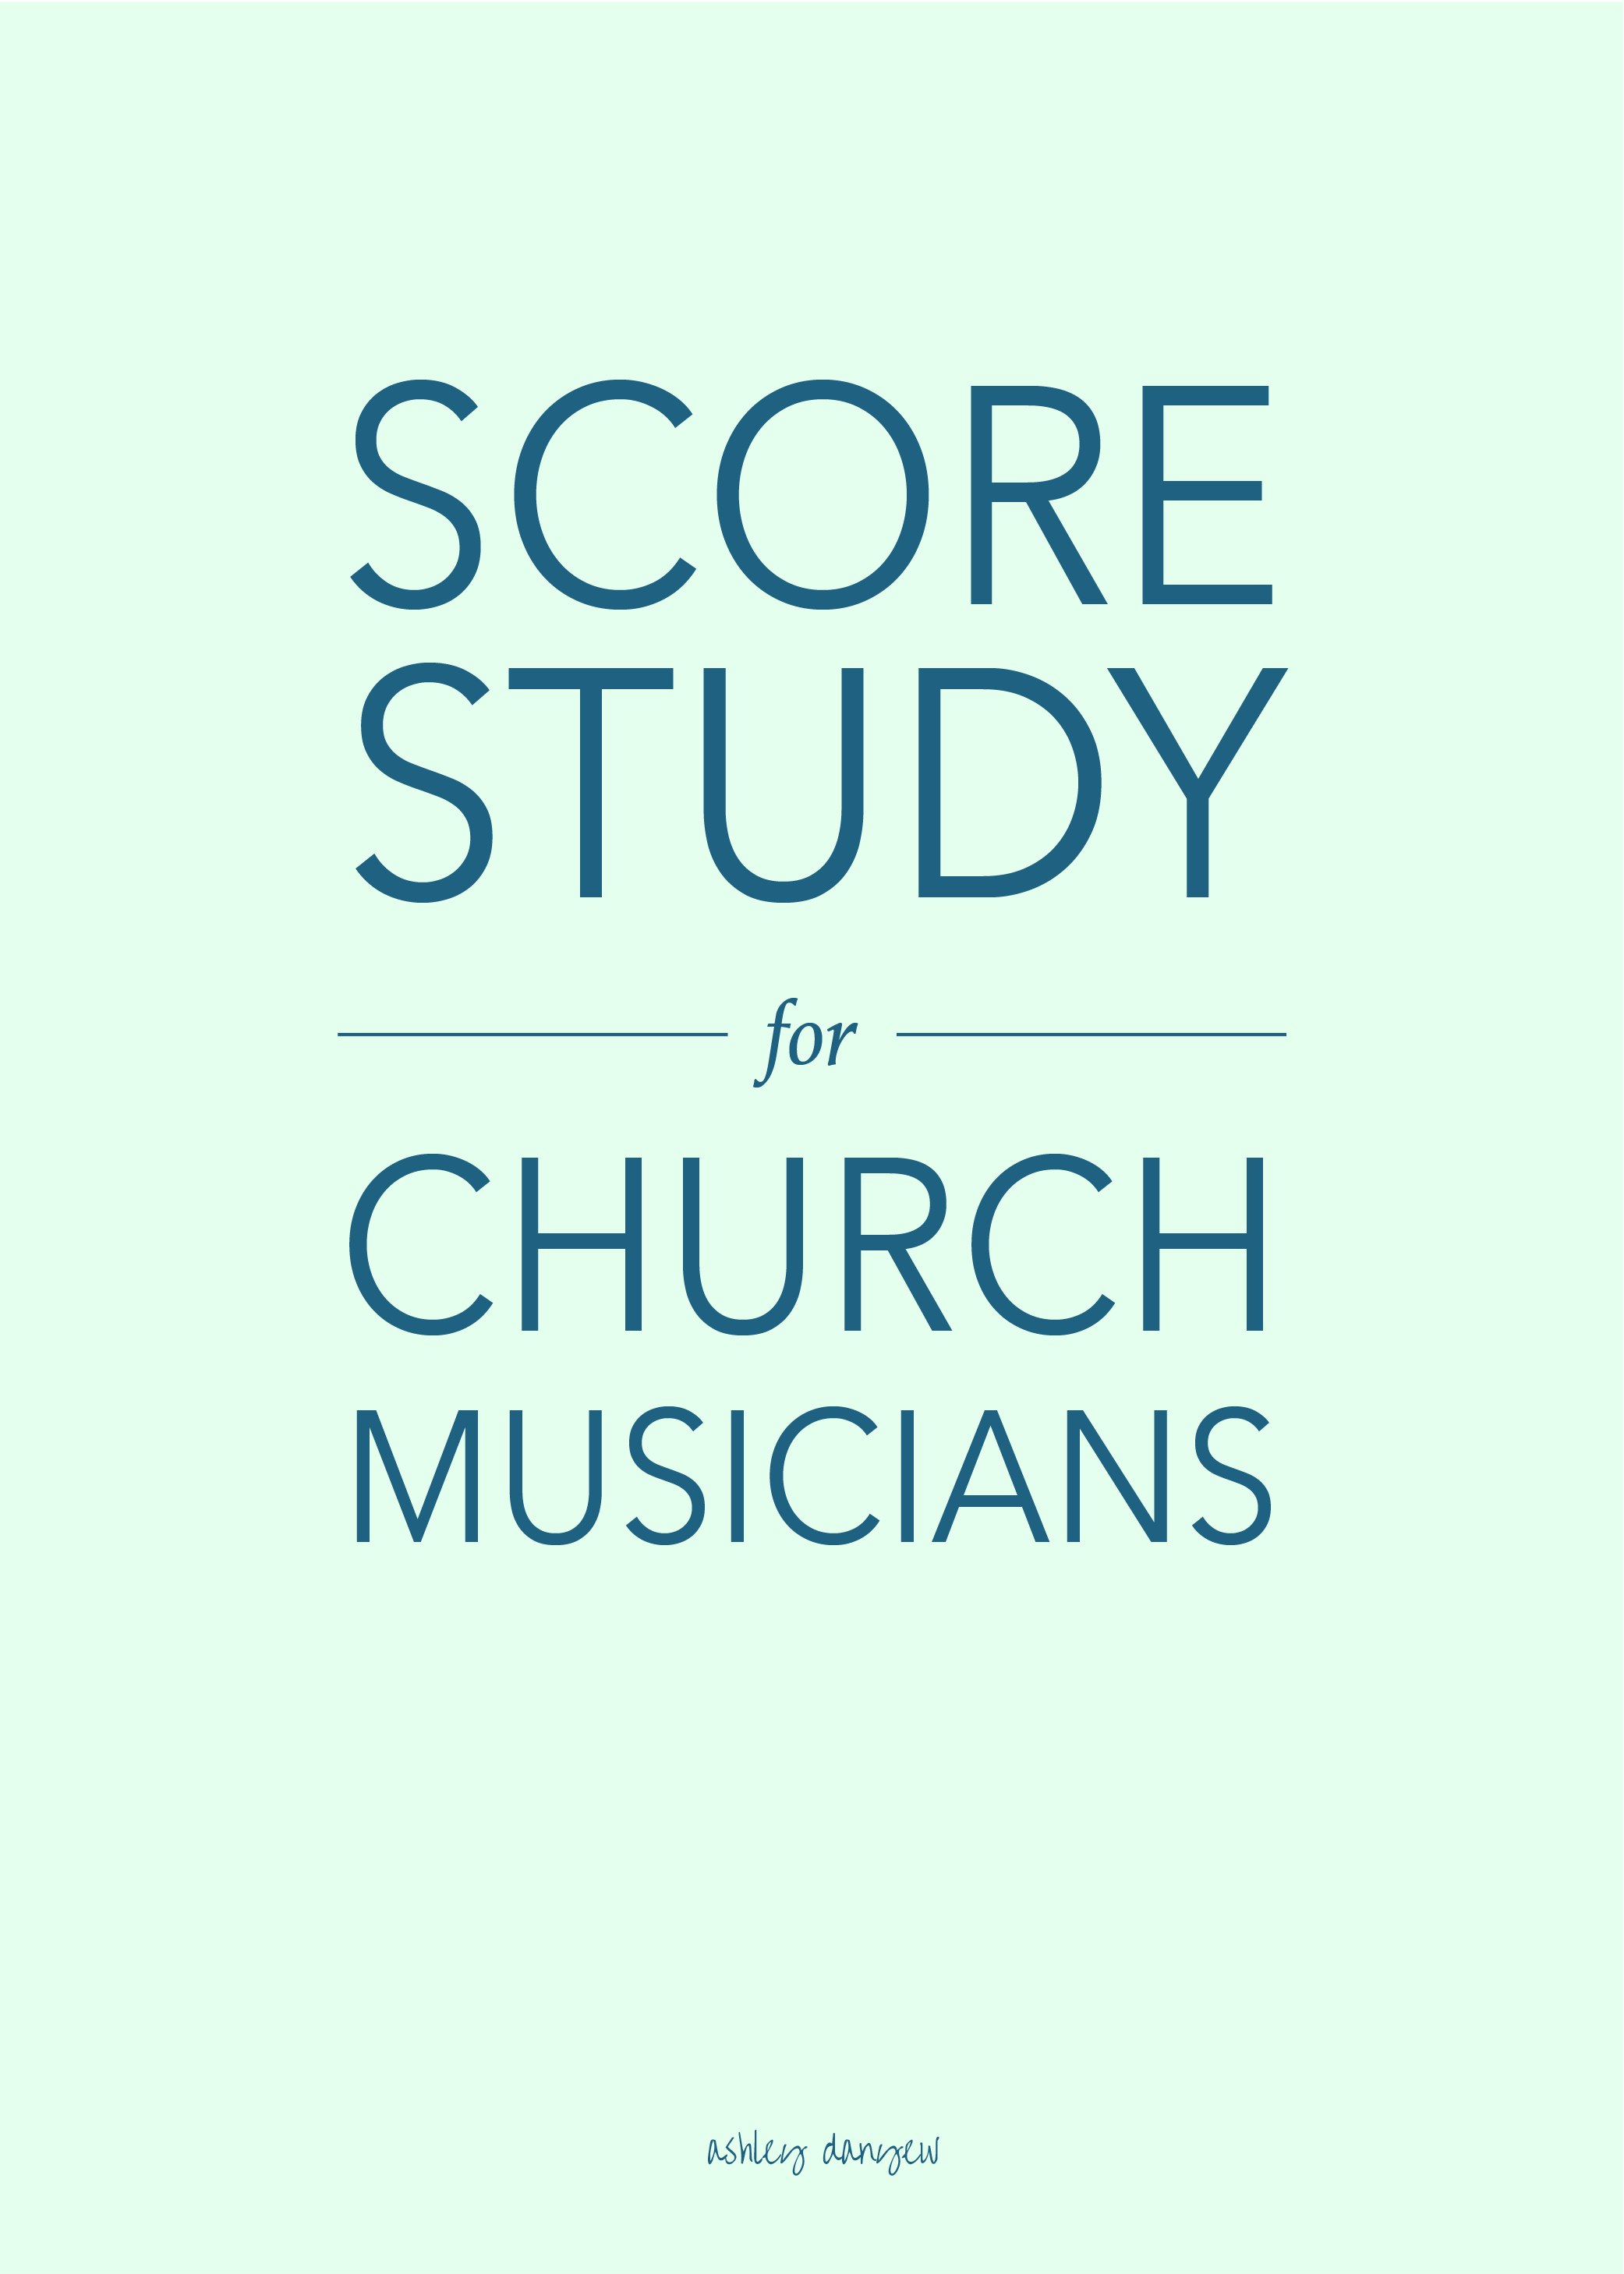 Score-Study-for-Church-Musicians-01.png